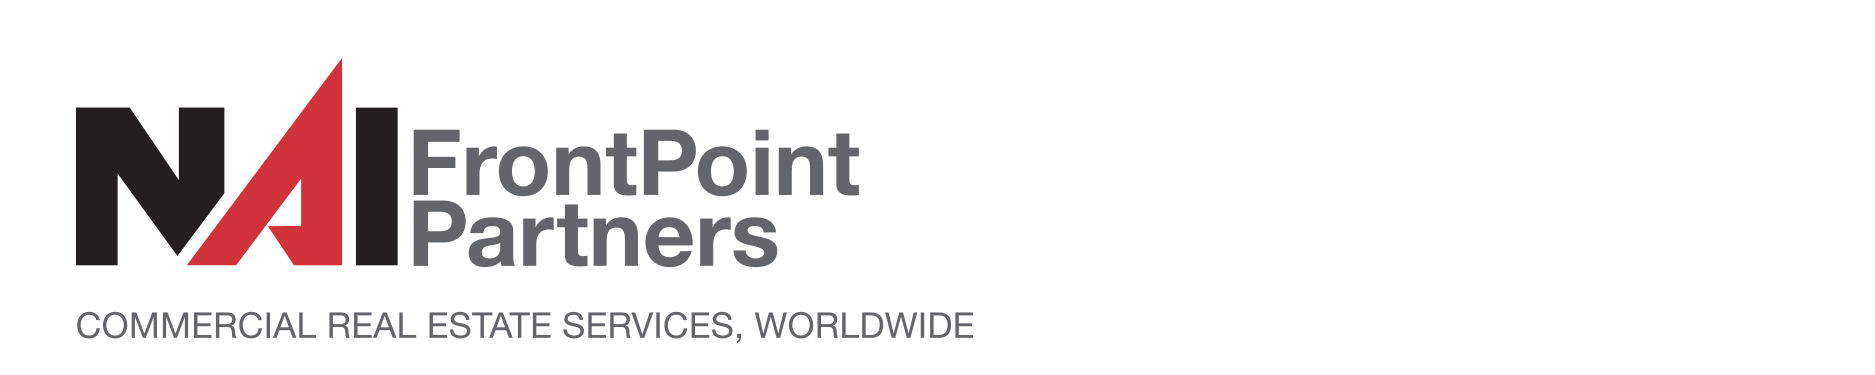 Logo of NAI FrontPoint Partners